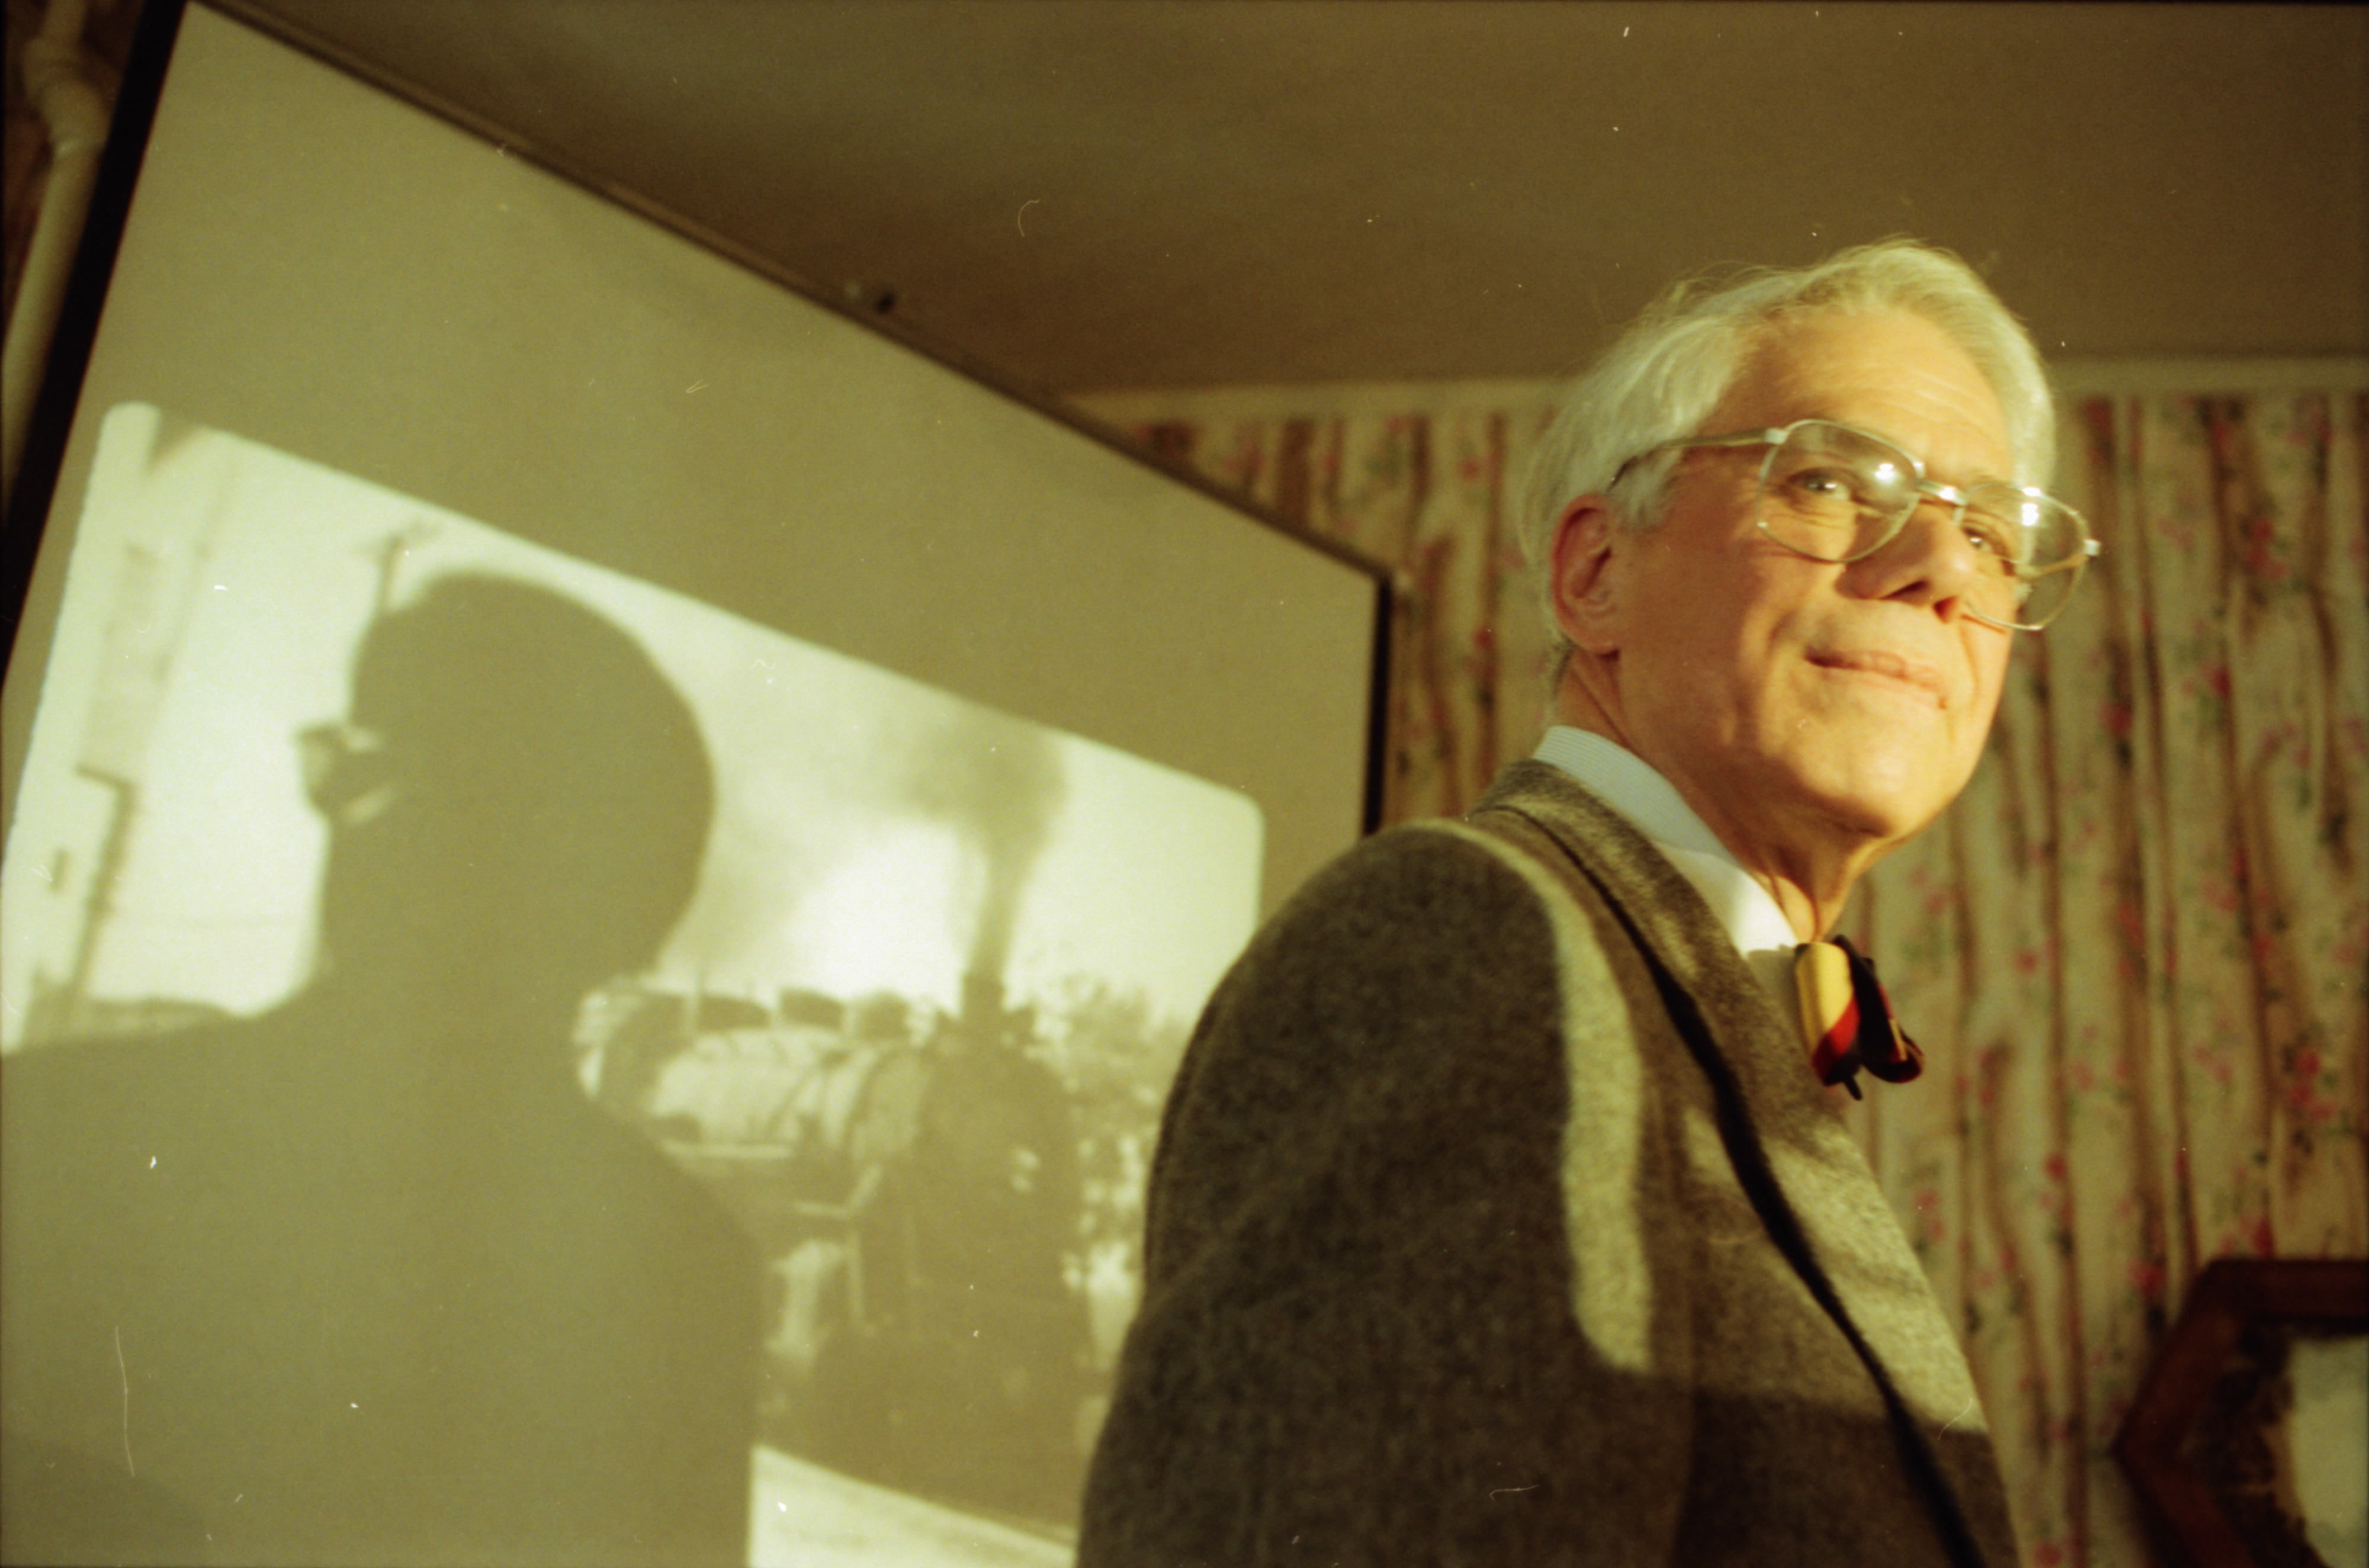 Dr. H. Mark Hildebrandt, Founder of Ann Arbor Train and Trolley Watchers, April 1997 image